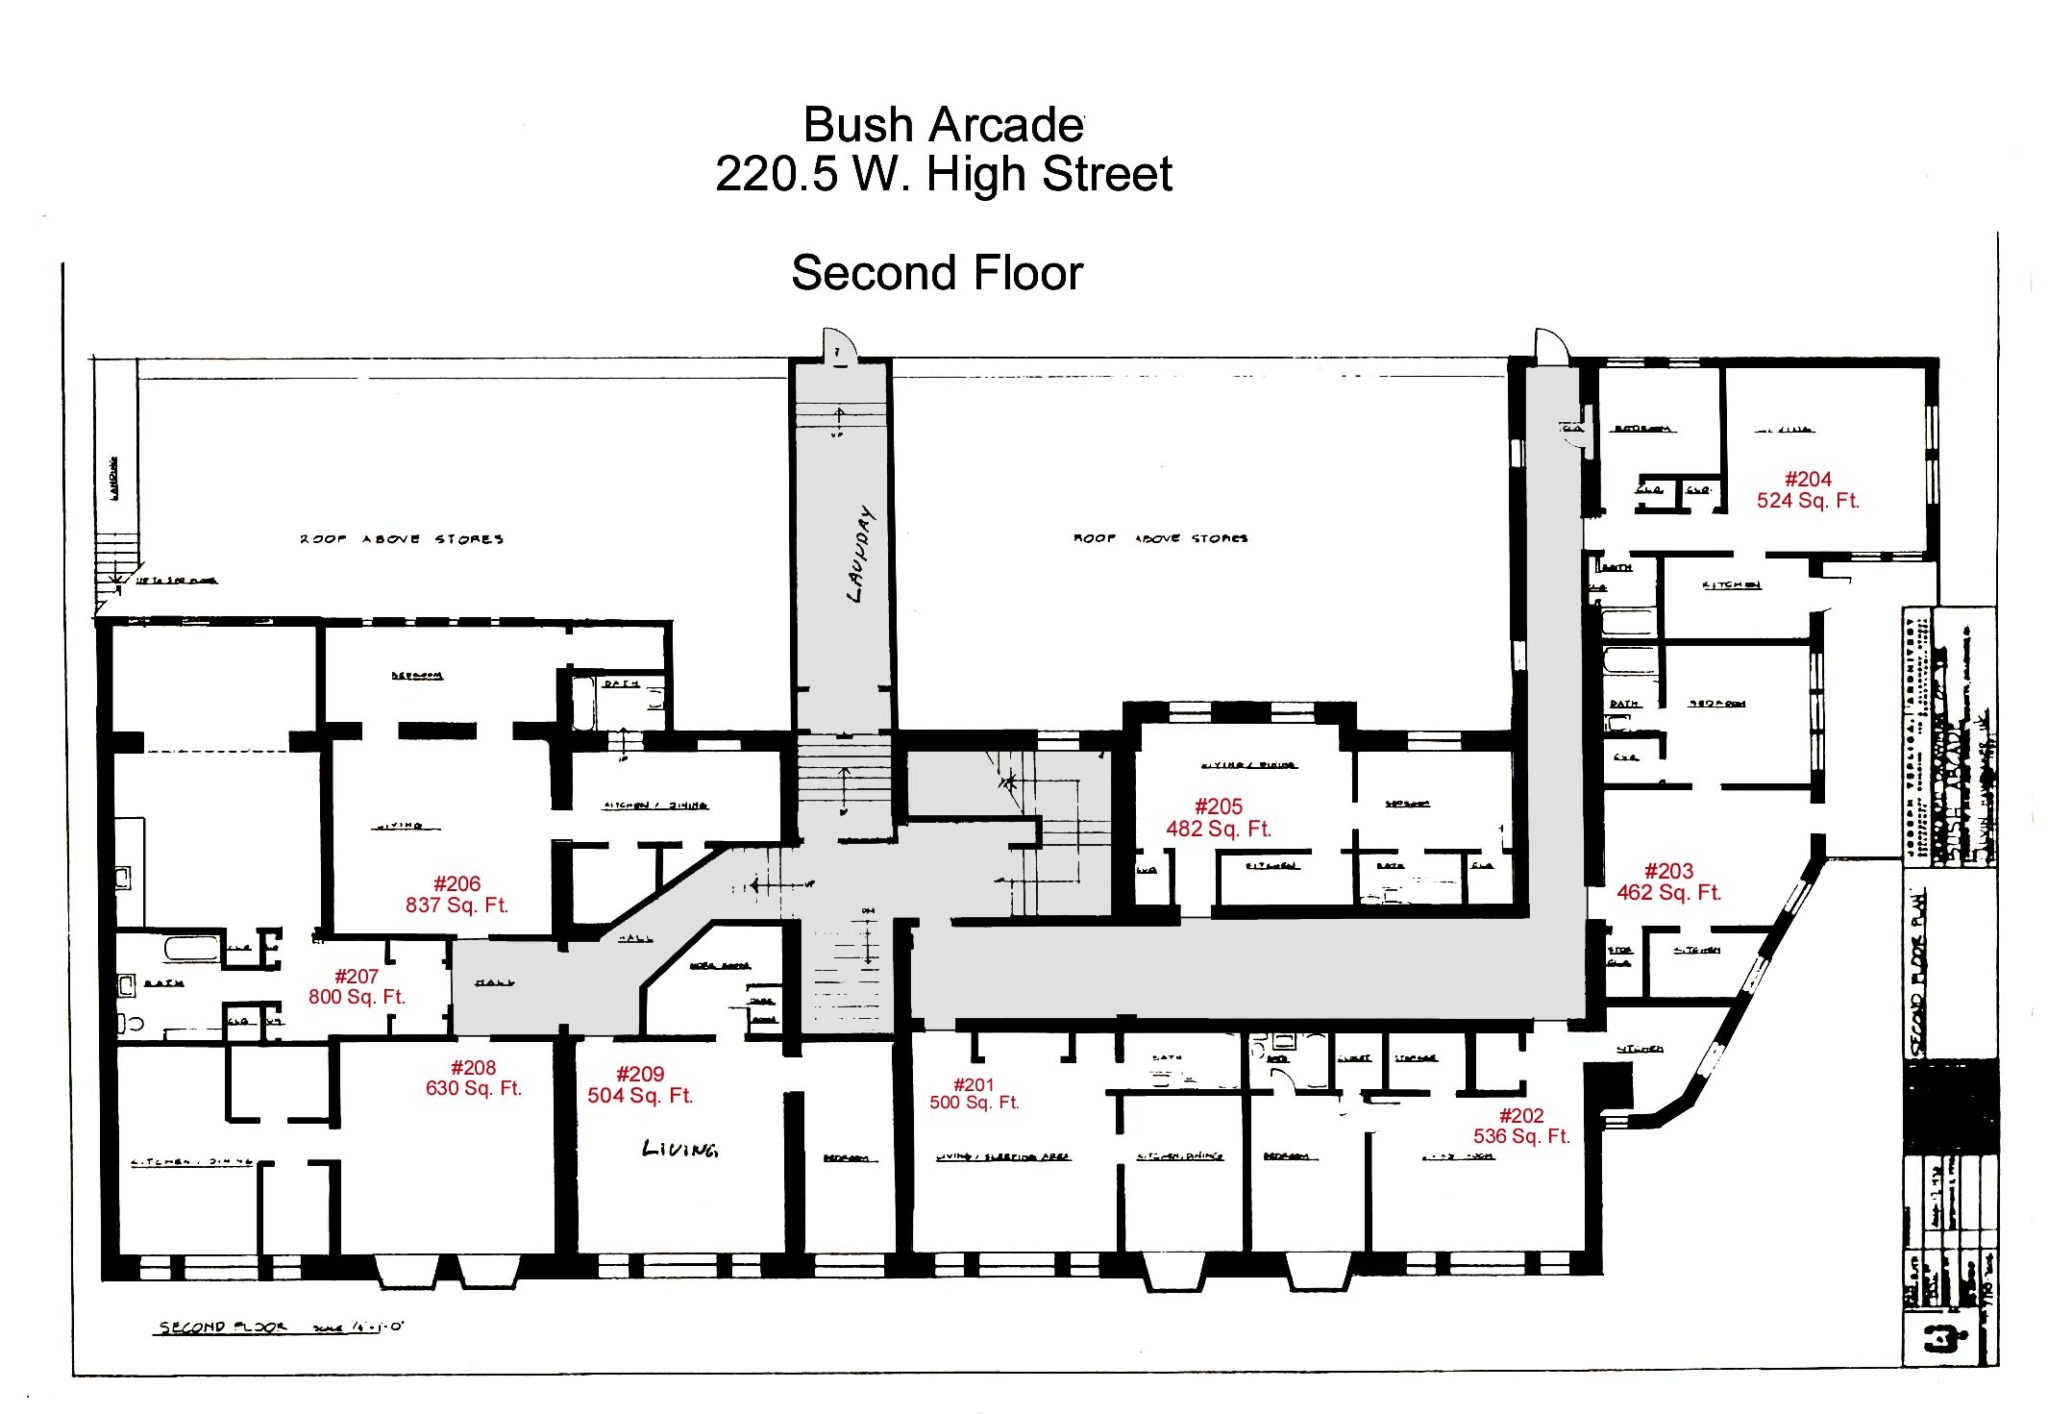 220.5 W. High Street 2nd Floor Plans